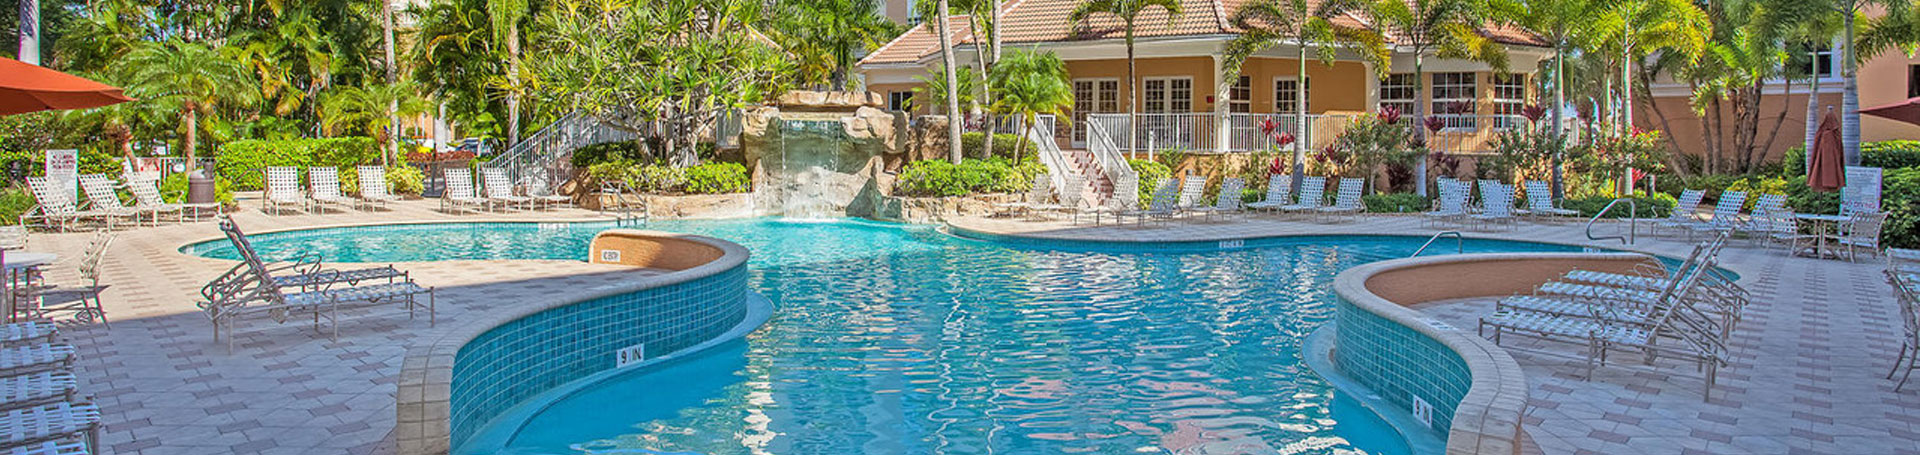 regatta-at-vanderbilt-beach_resort-style-pool